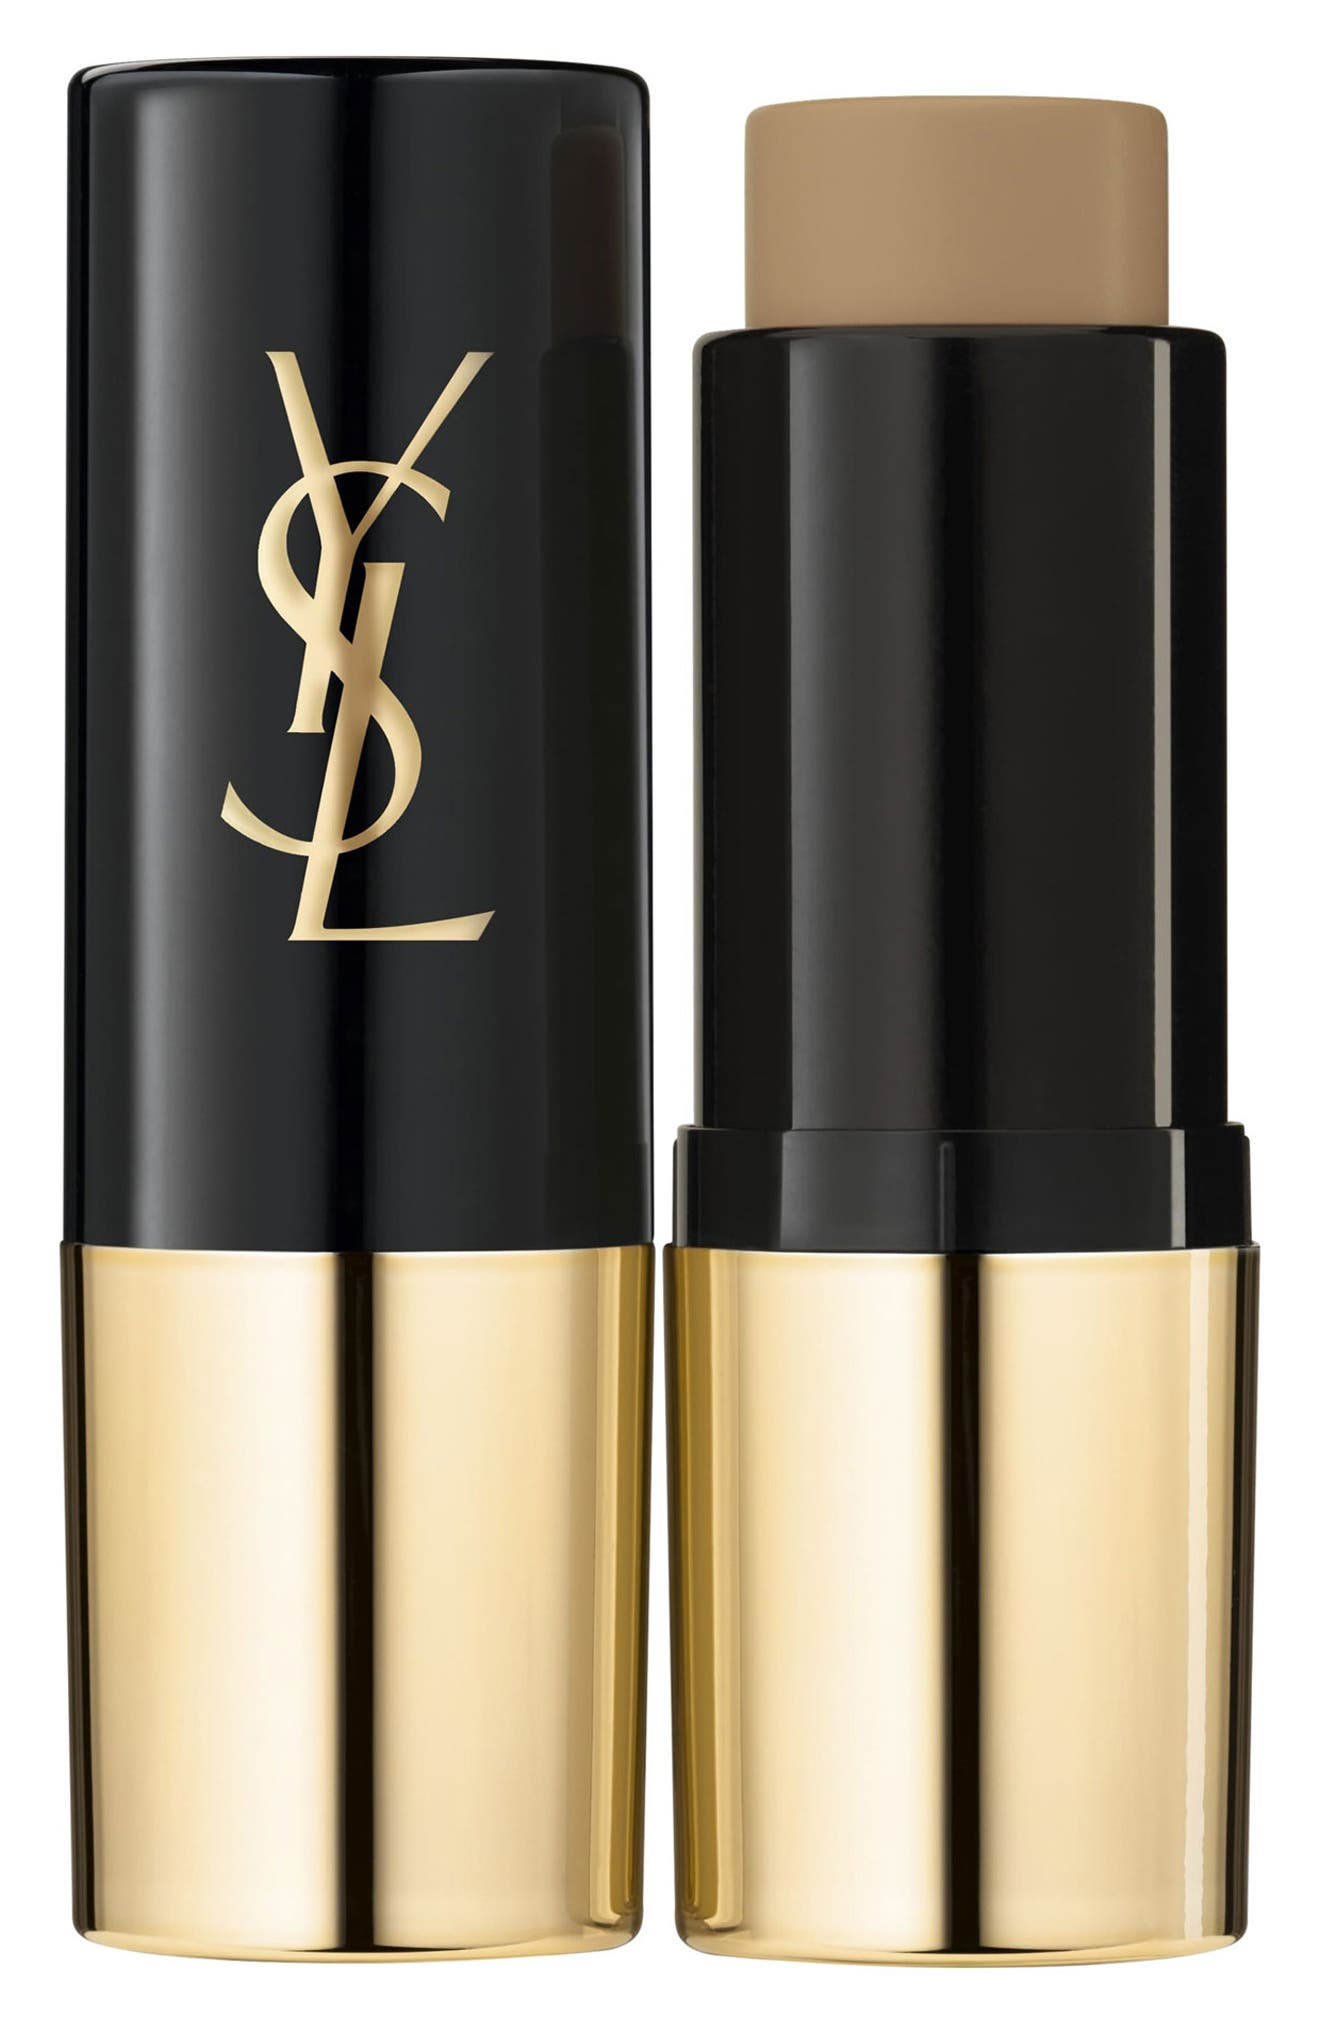 Yves Saint Laurent All Hours Foundation Stick - B60 Amber